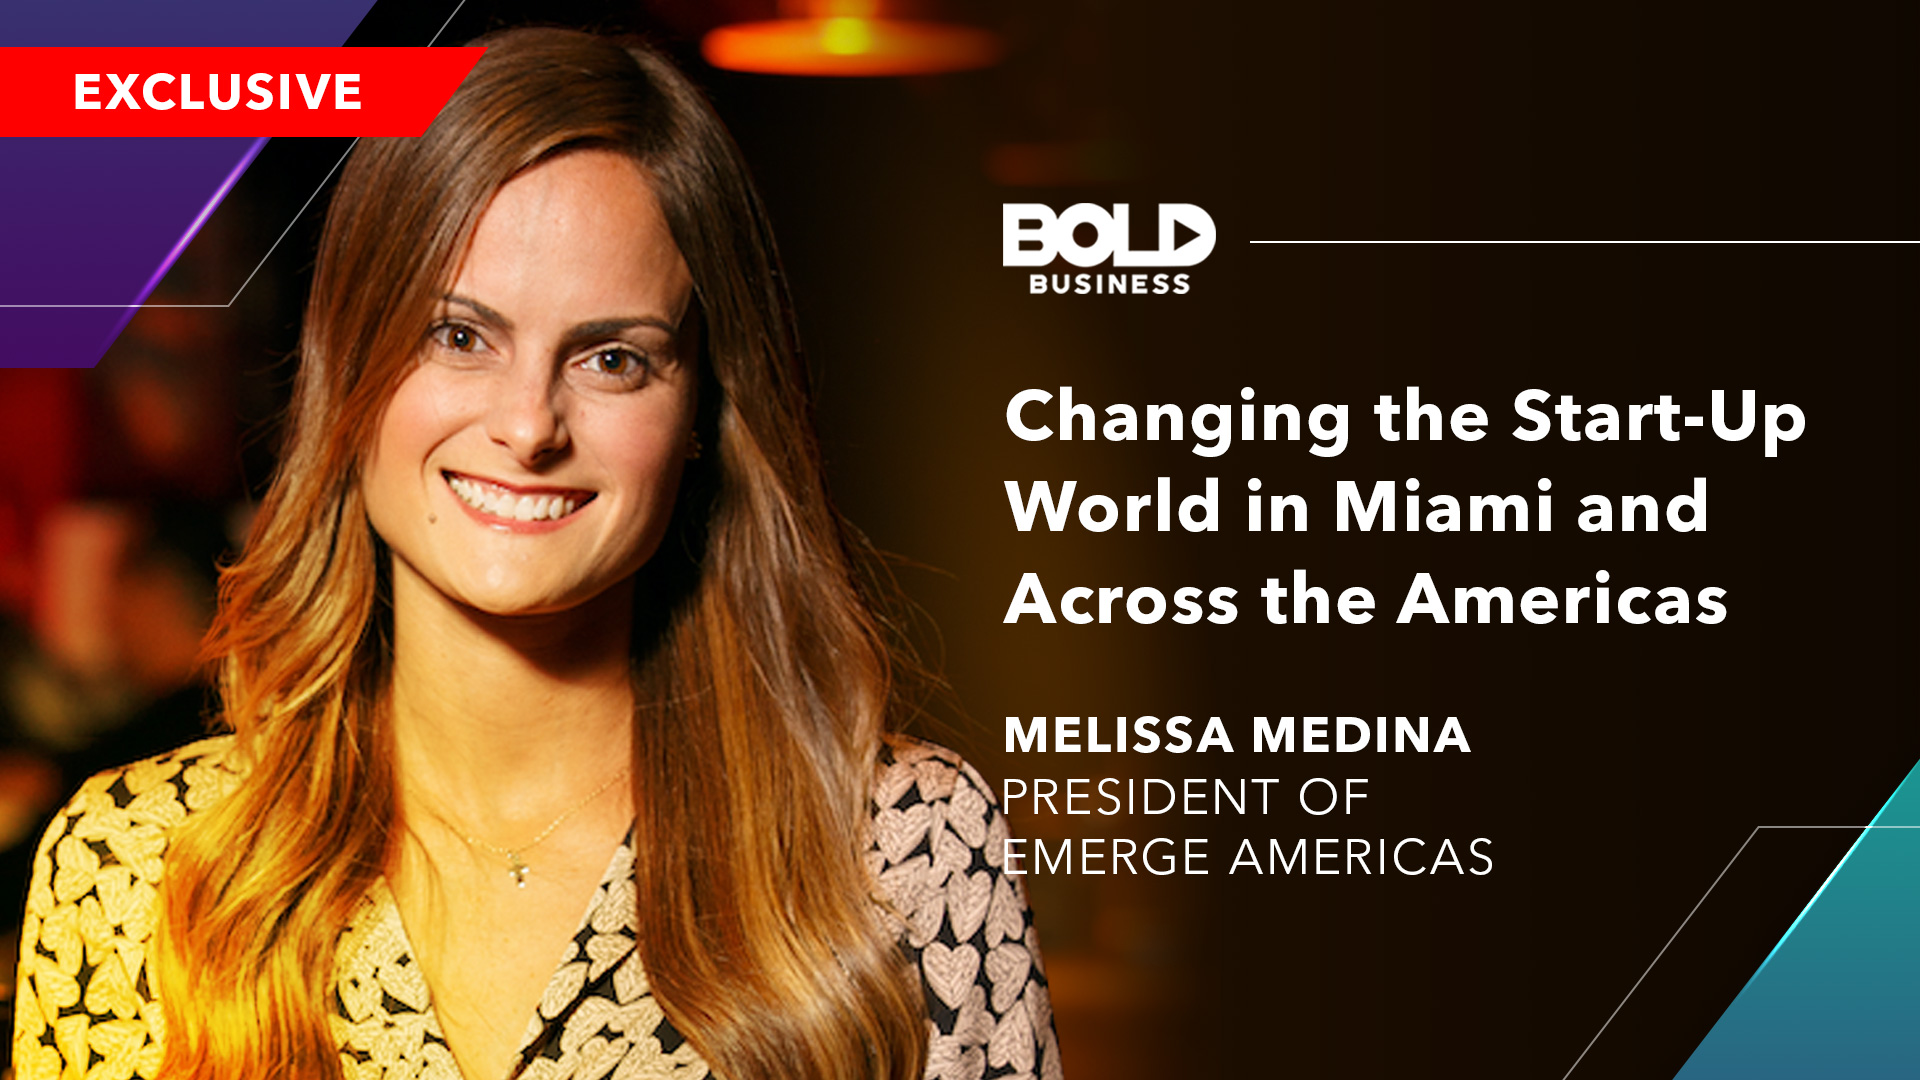 How eMerge Americas is Changing the Start-Up World